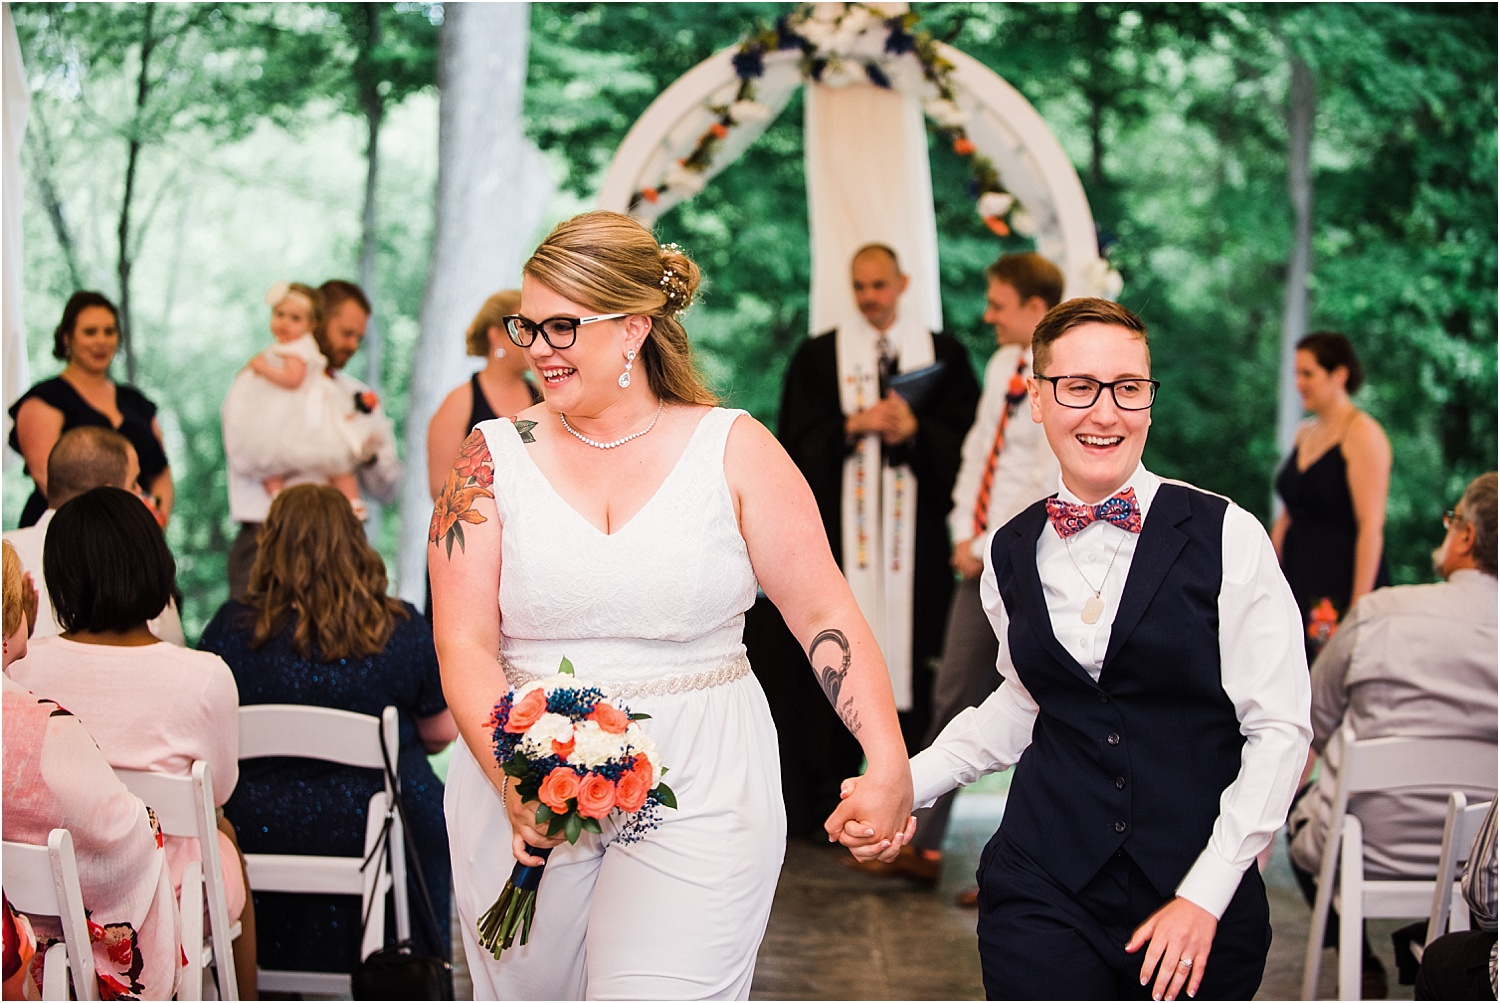 The_Riverview_Simsbury_Connecticut_Wedding_LGBT_Weddings_034.jpg